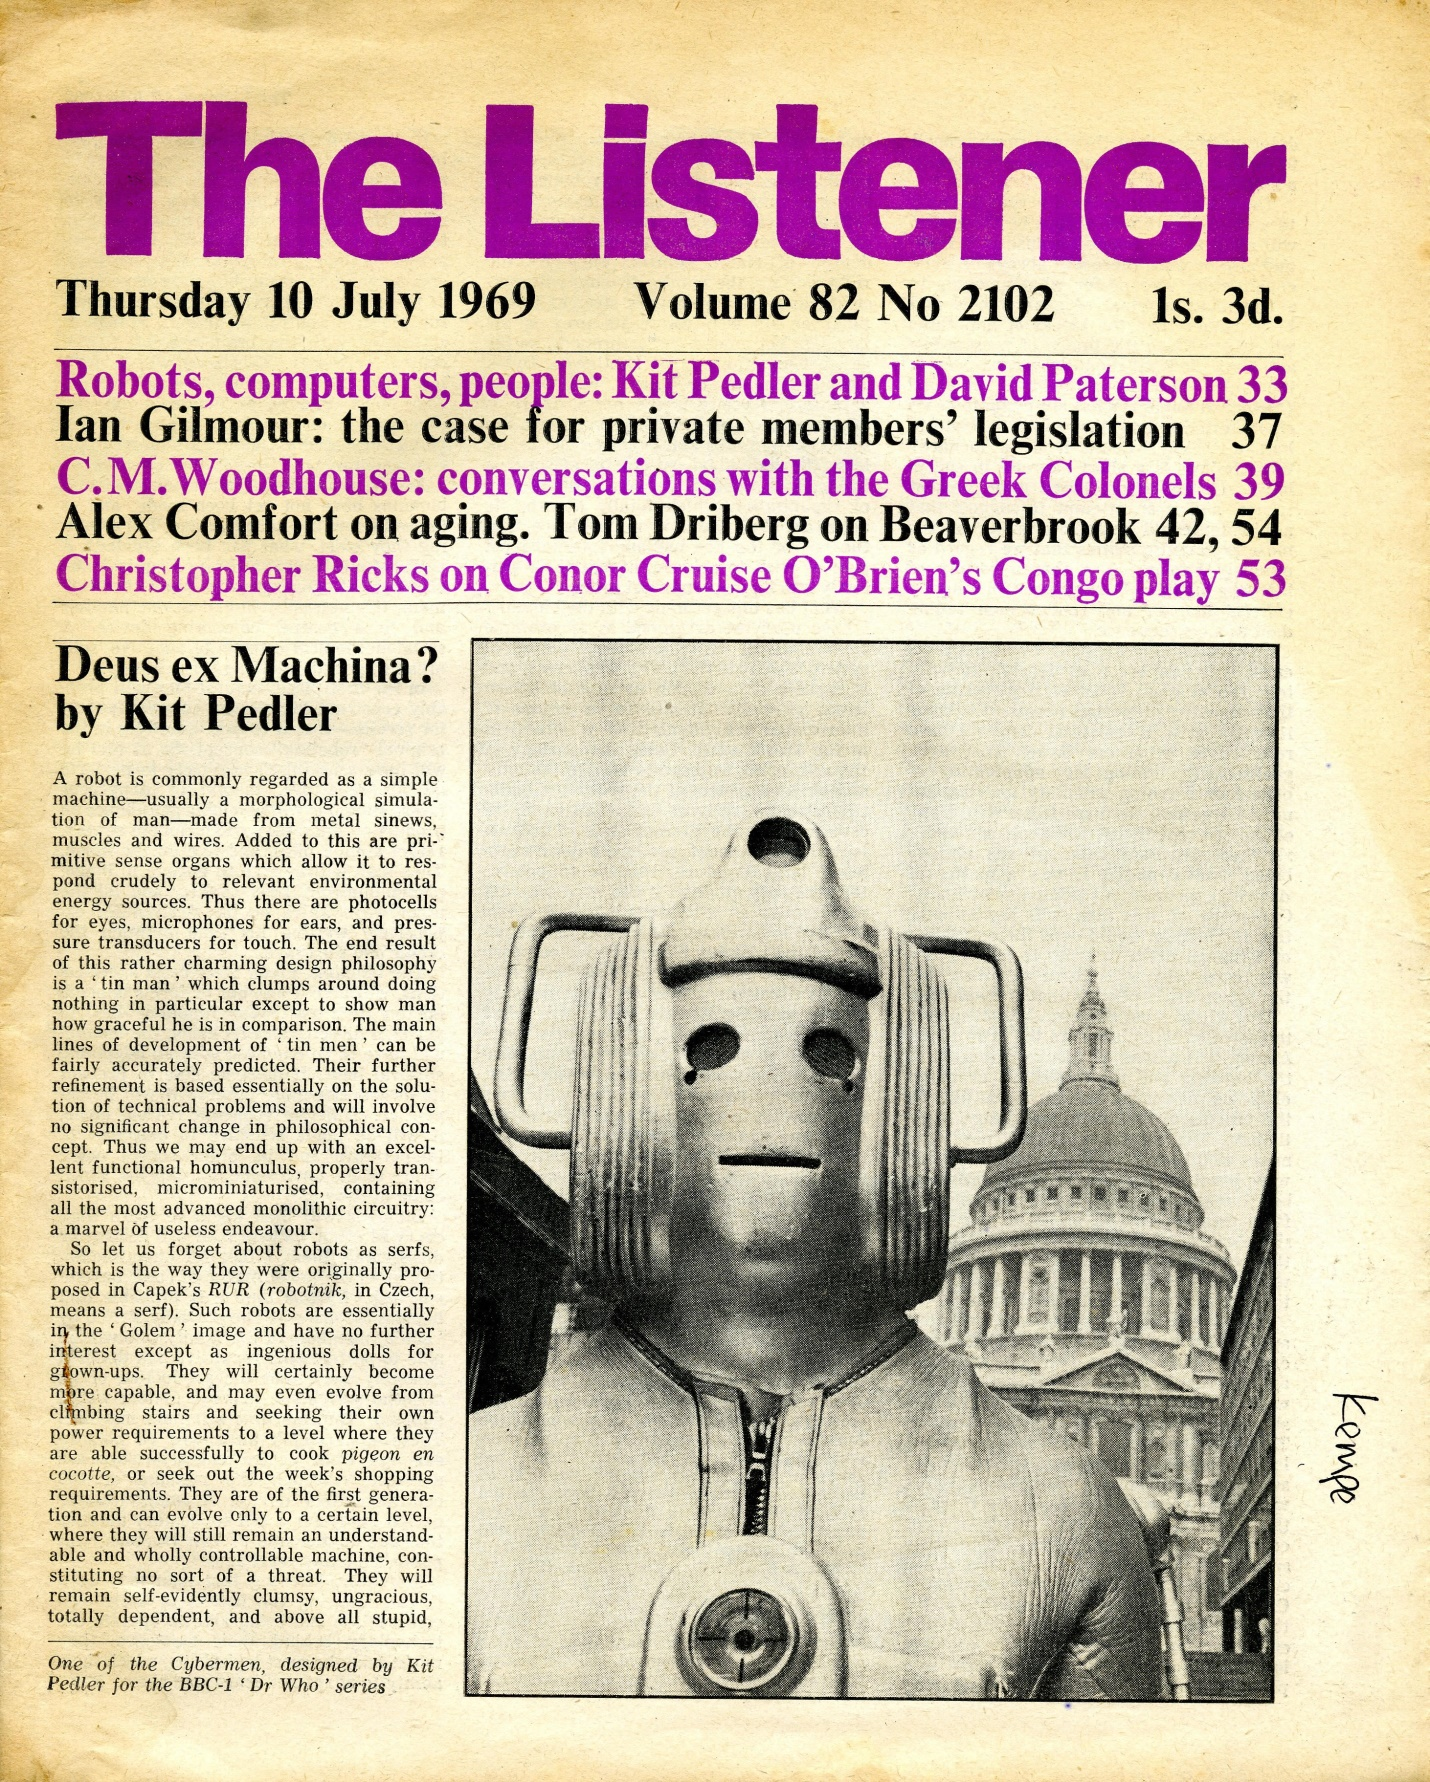 The Listener, vol. 82, no. 2102, 8 July 1969